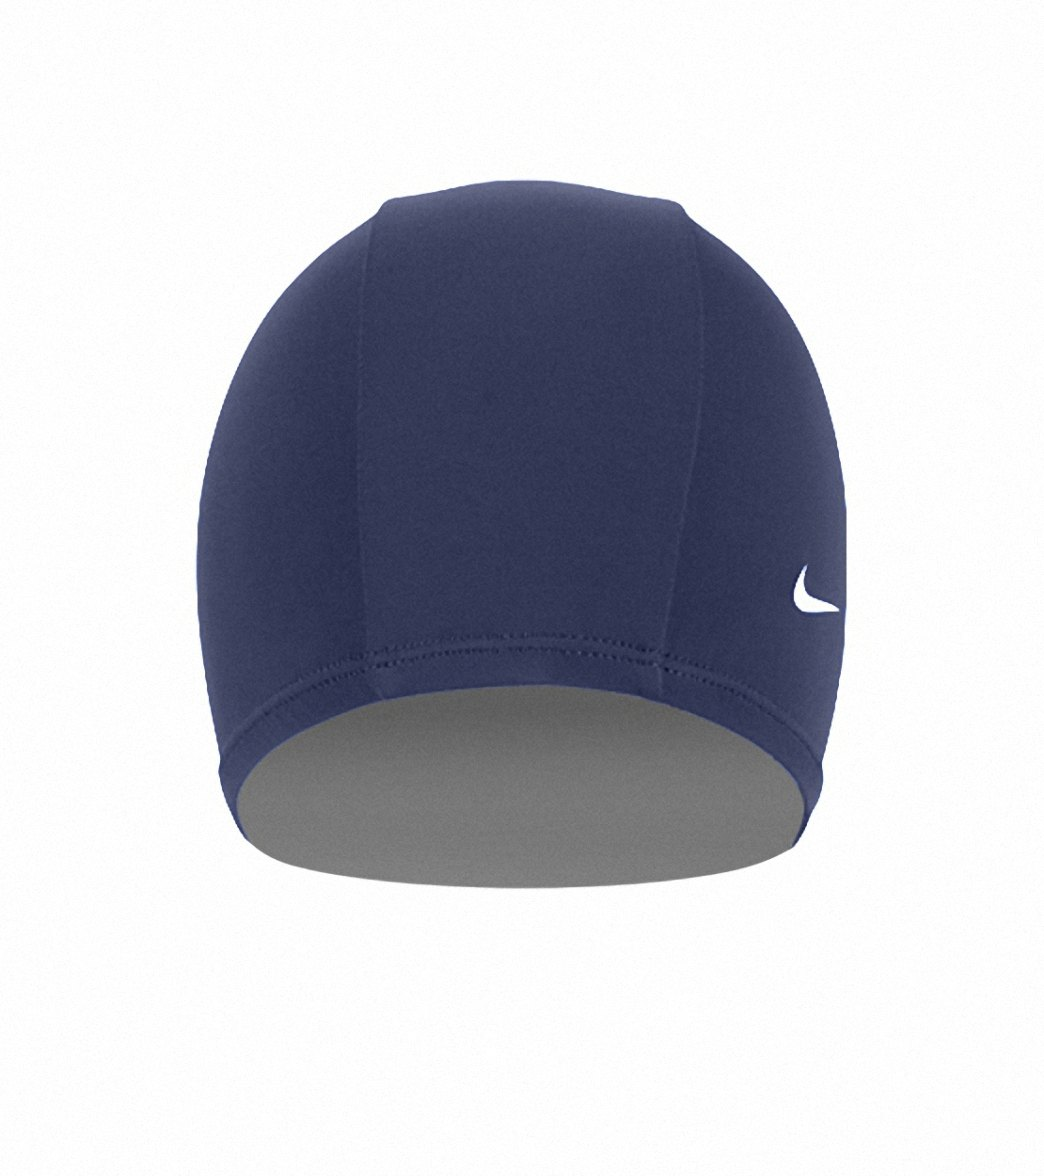 Nike Spandex Swim Cap at SwimOutlet.com d41597b9283